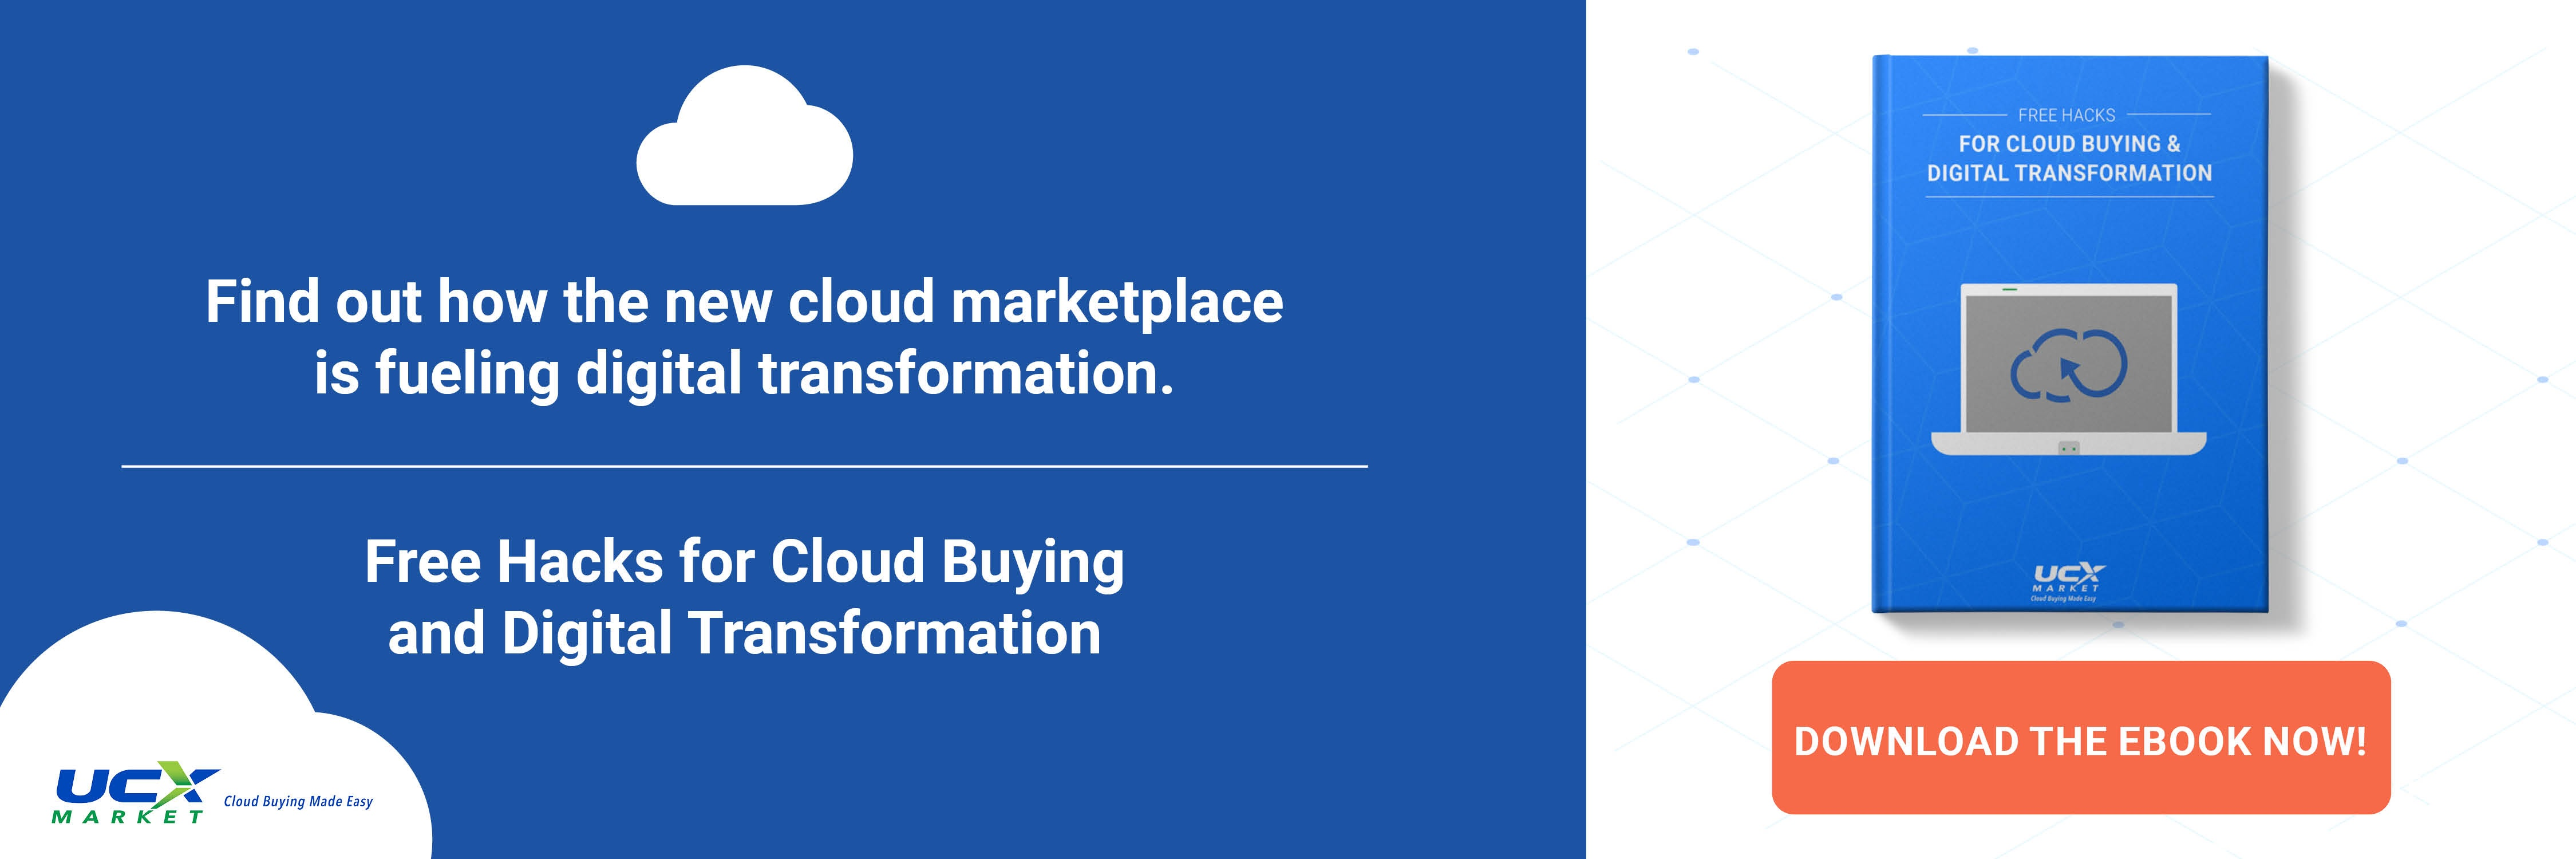 Free Hacks For Cloud Buying and Digital Transformation